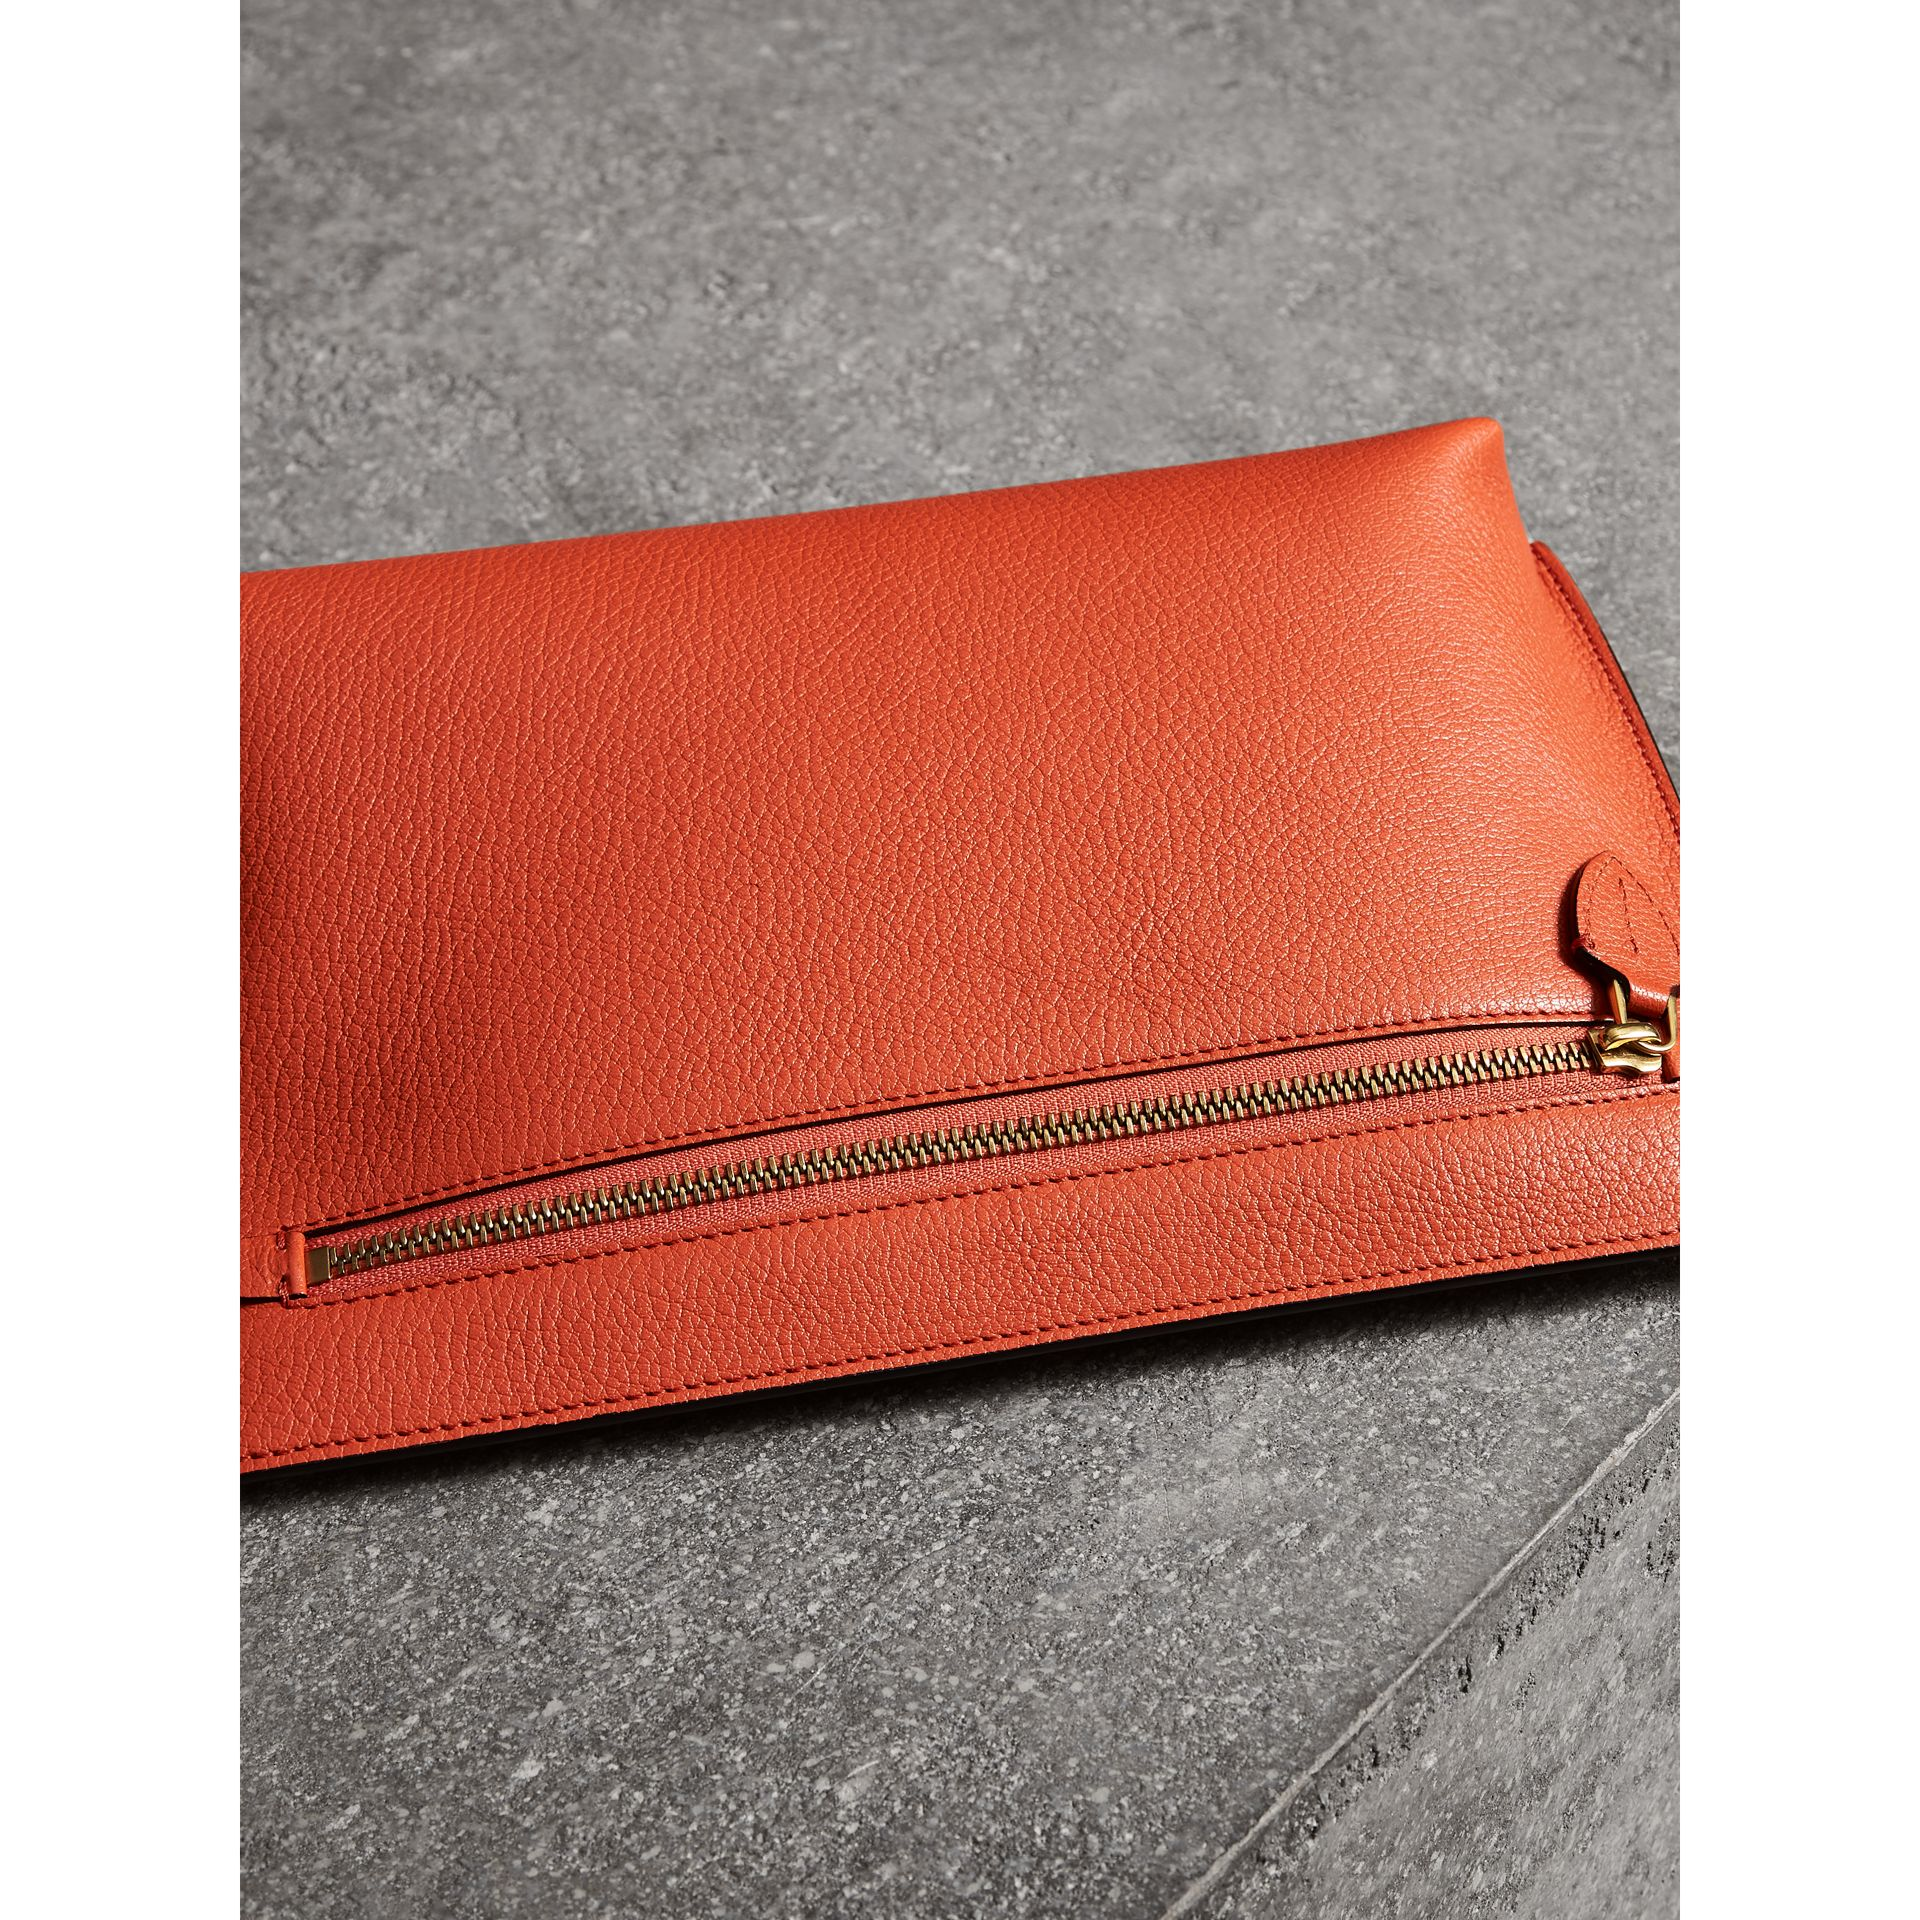 Grainy Leather Wristlet Clutch in Clementine - Women | Burberry Singapore - gallery image 7